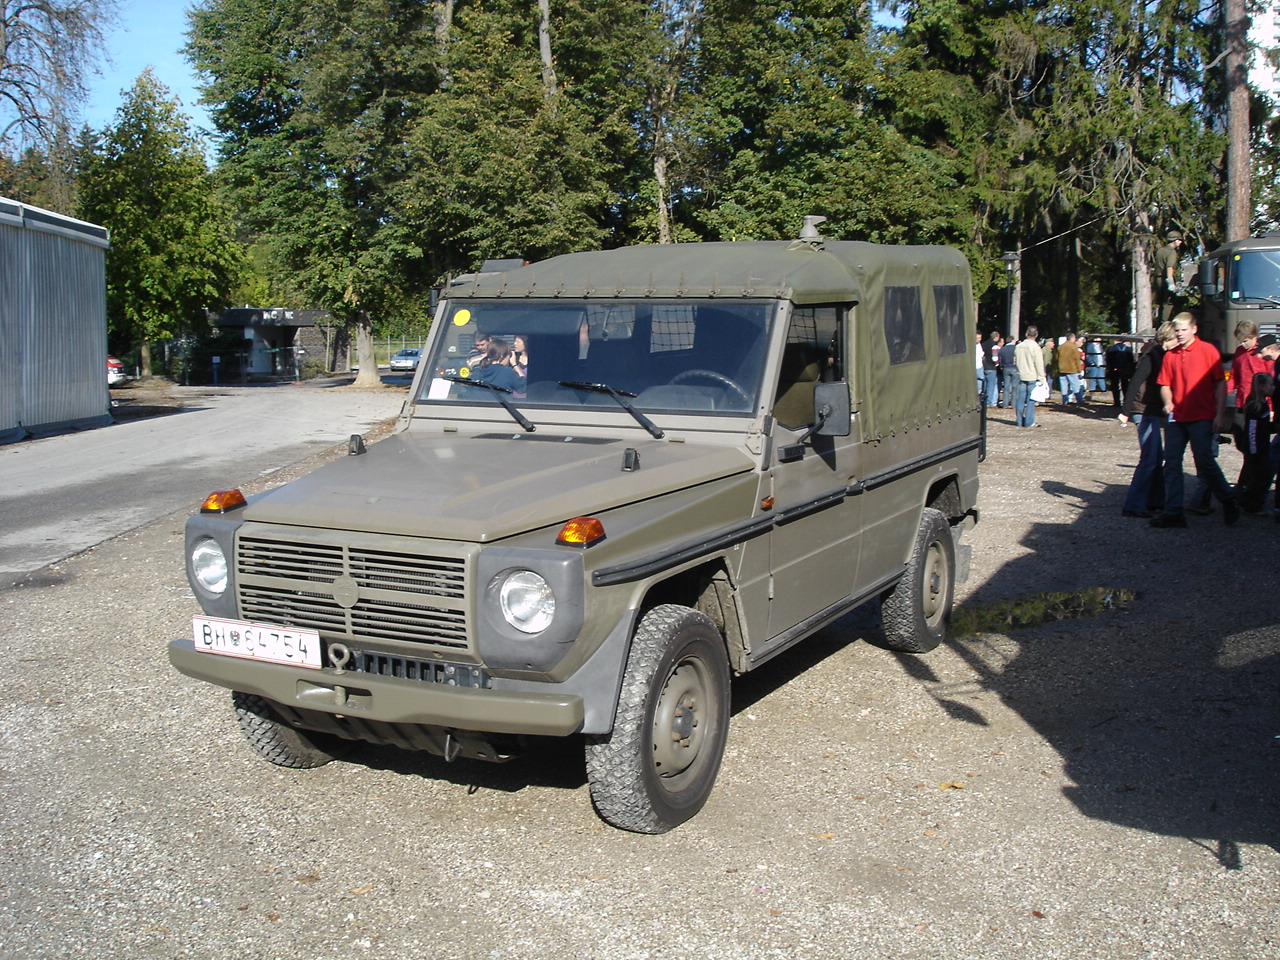 Puch_G_Bundesheer-Quelle-WikipediaAt6YQI1MAwQ4l